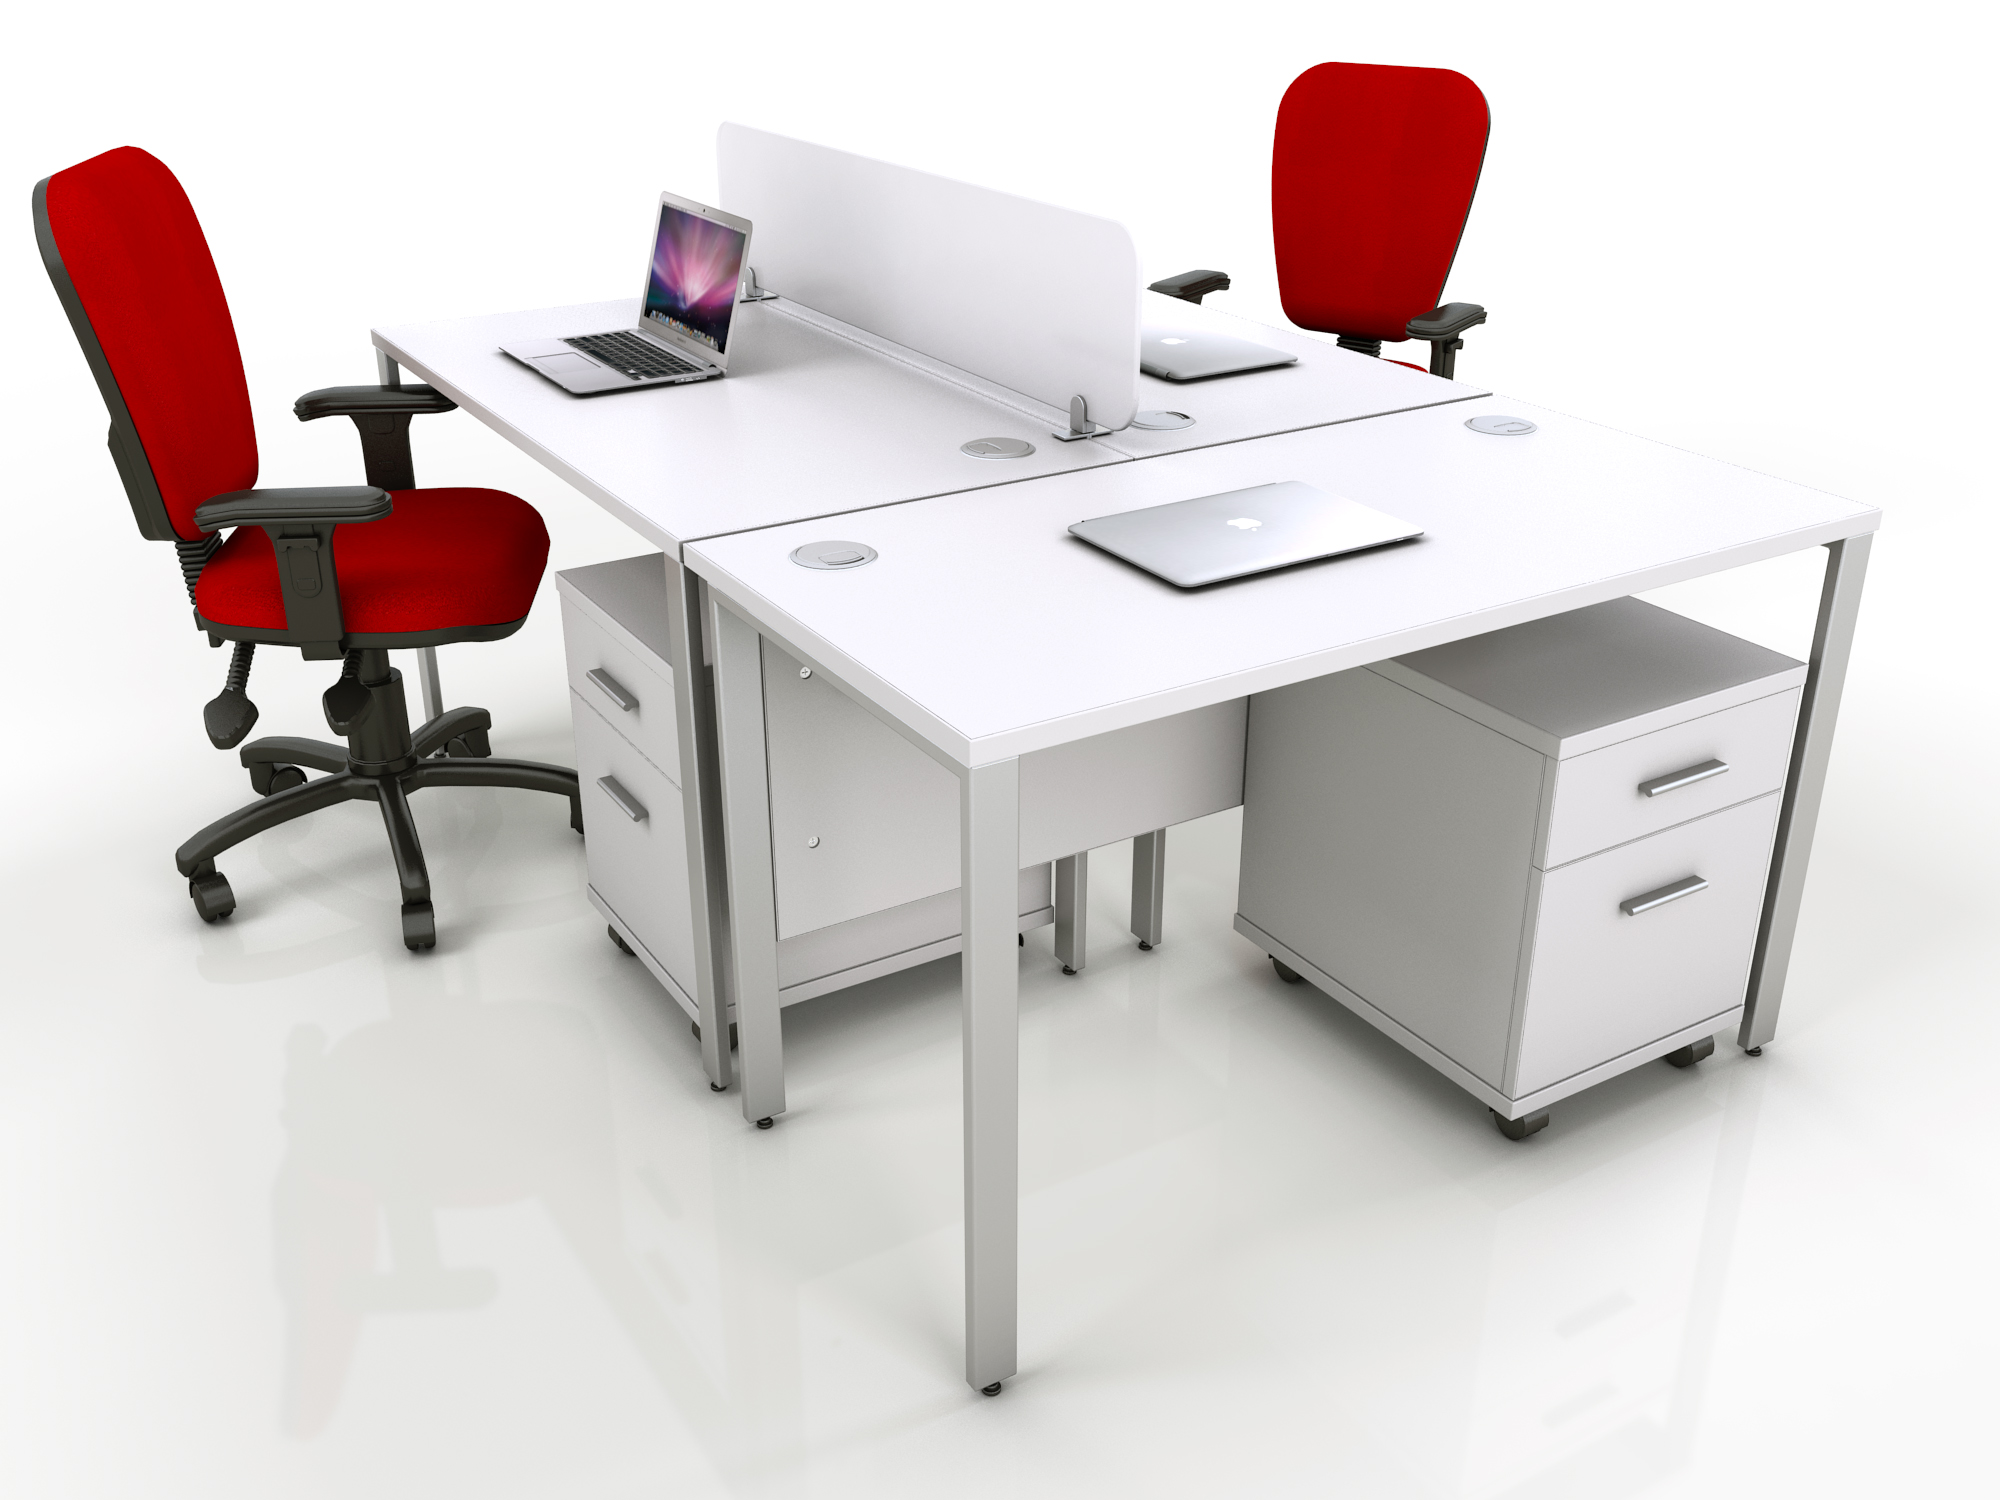 Latest Office Furniture  Plain Furniture Bench Desks And Latest     latest office furniture  plain furniture bench desks and latest office  furniture c